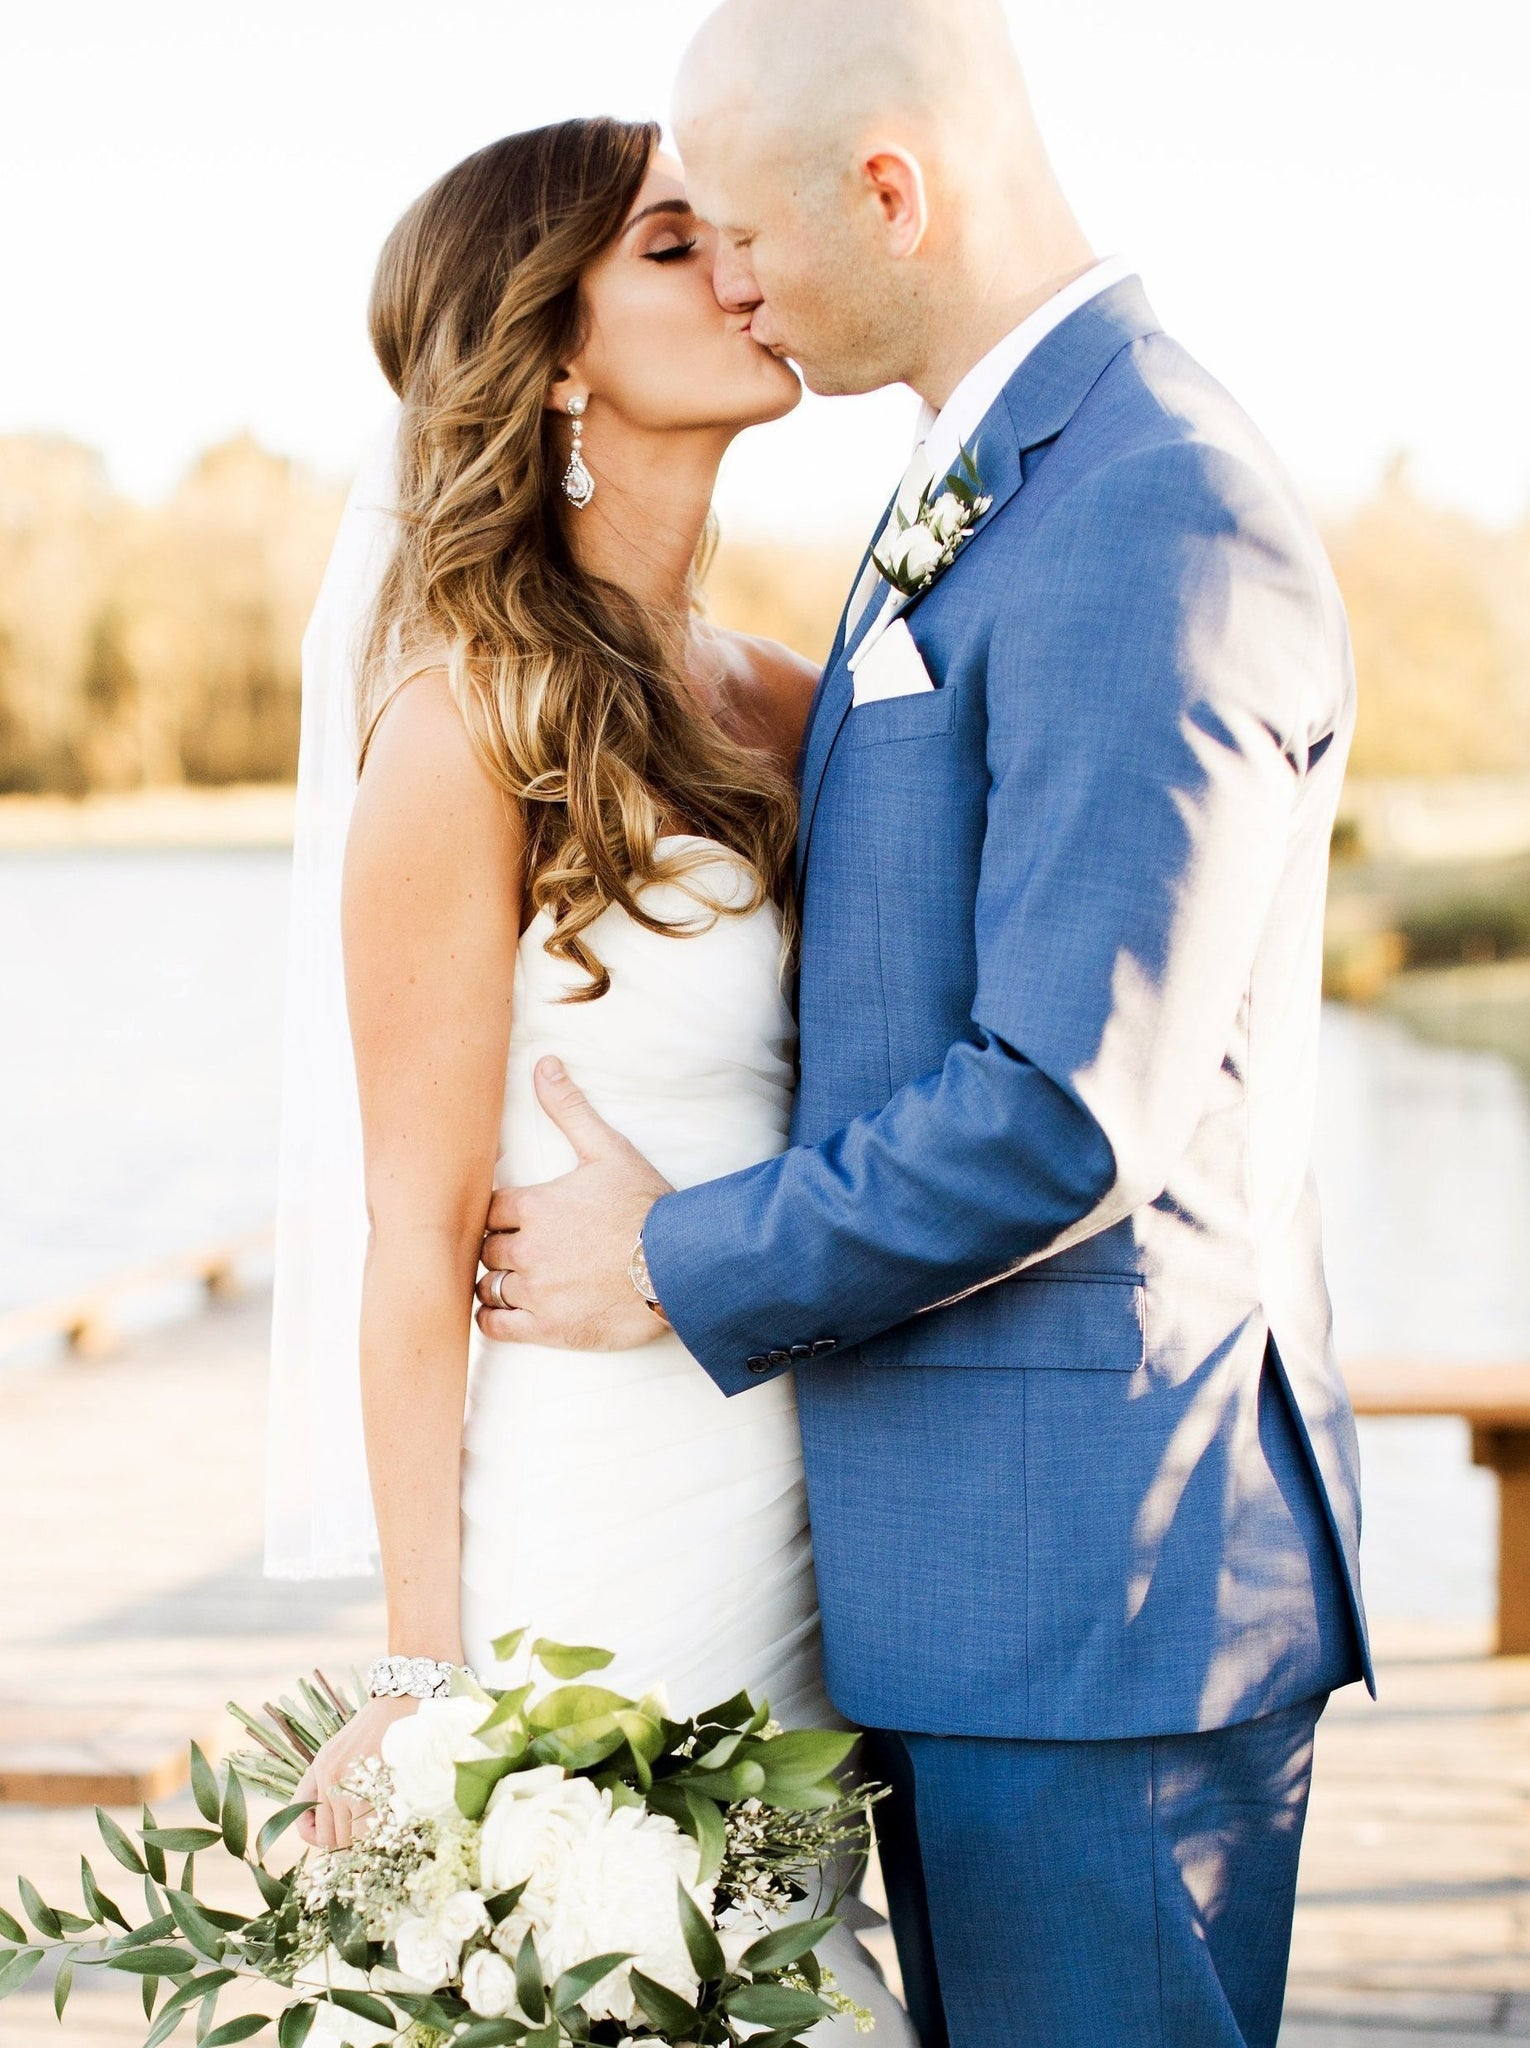 Wedding Photography Packages - Lindsey Mueller Photography